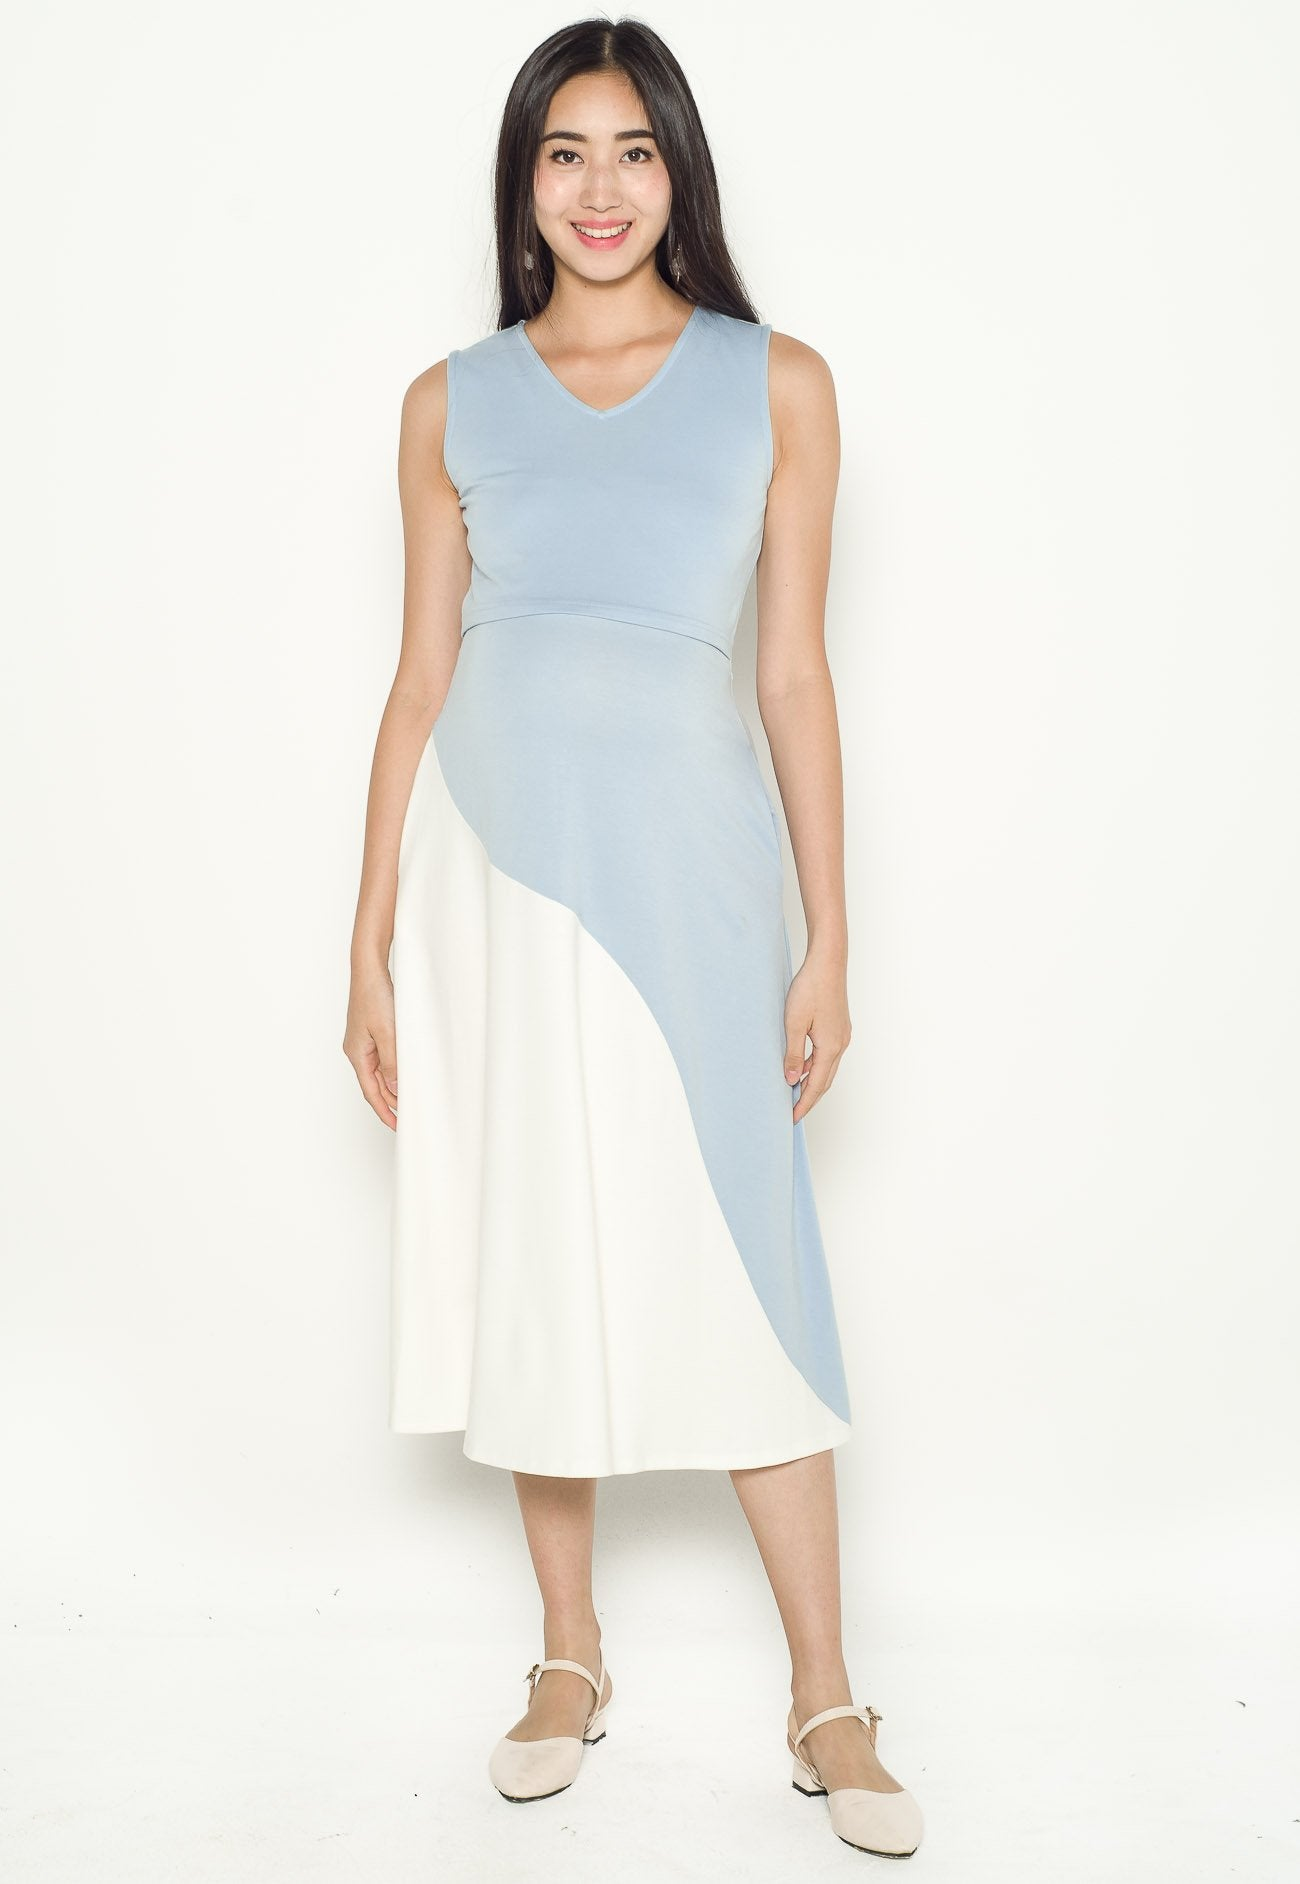 Evie Curved Overlay Nursing Dress in Blue  by Jump Eat Cry - Maternity and nursing wear